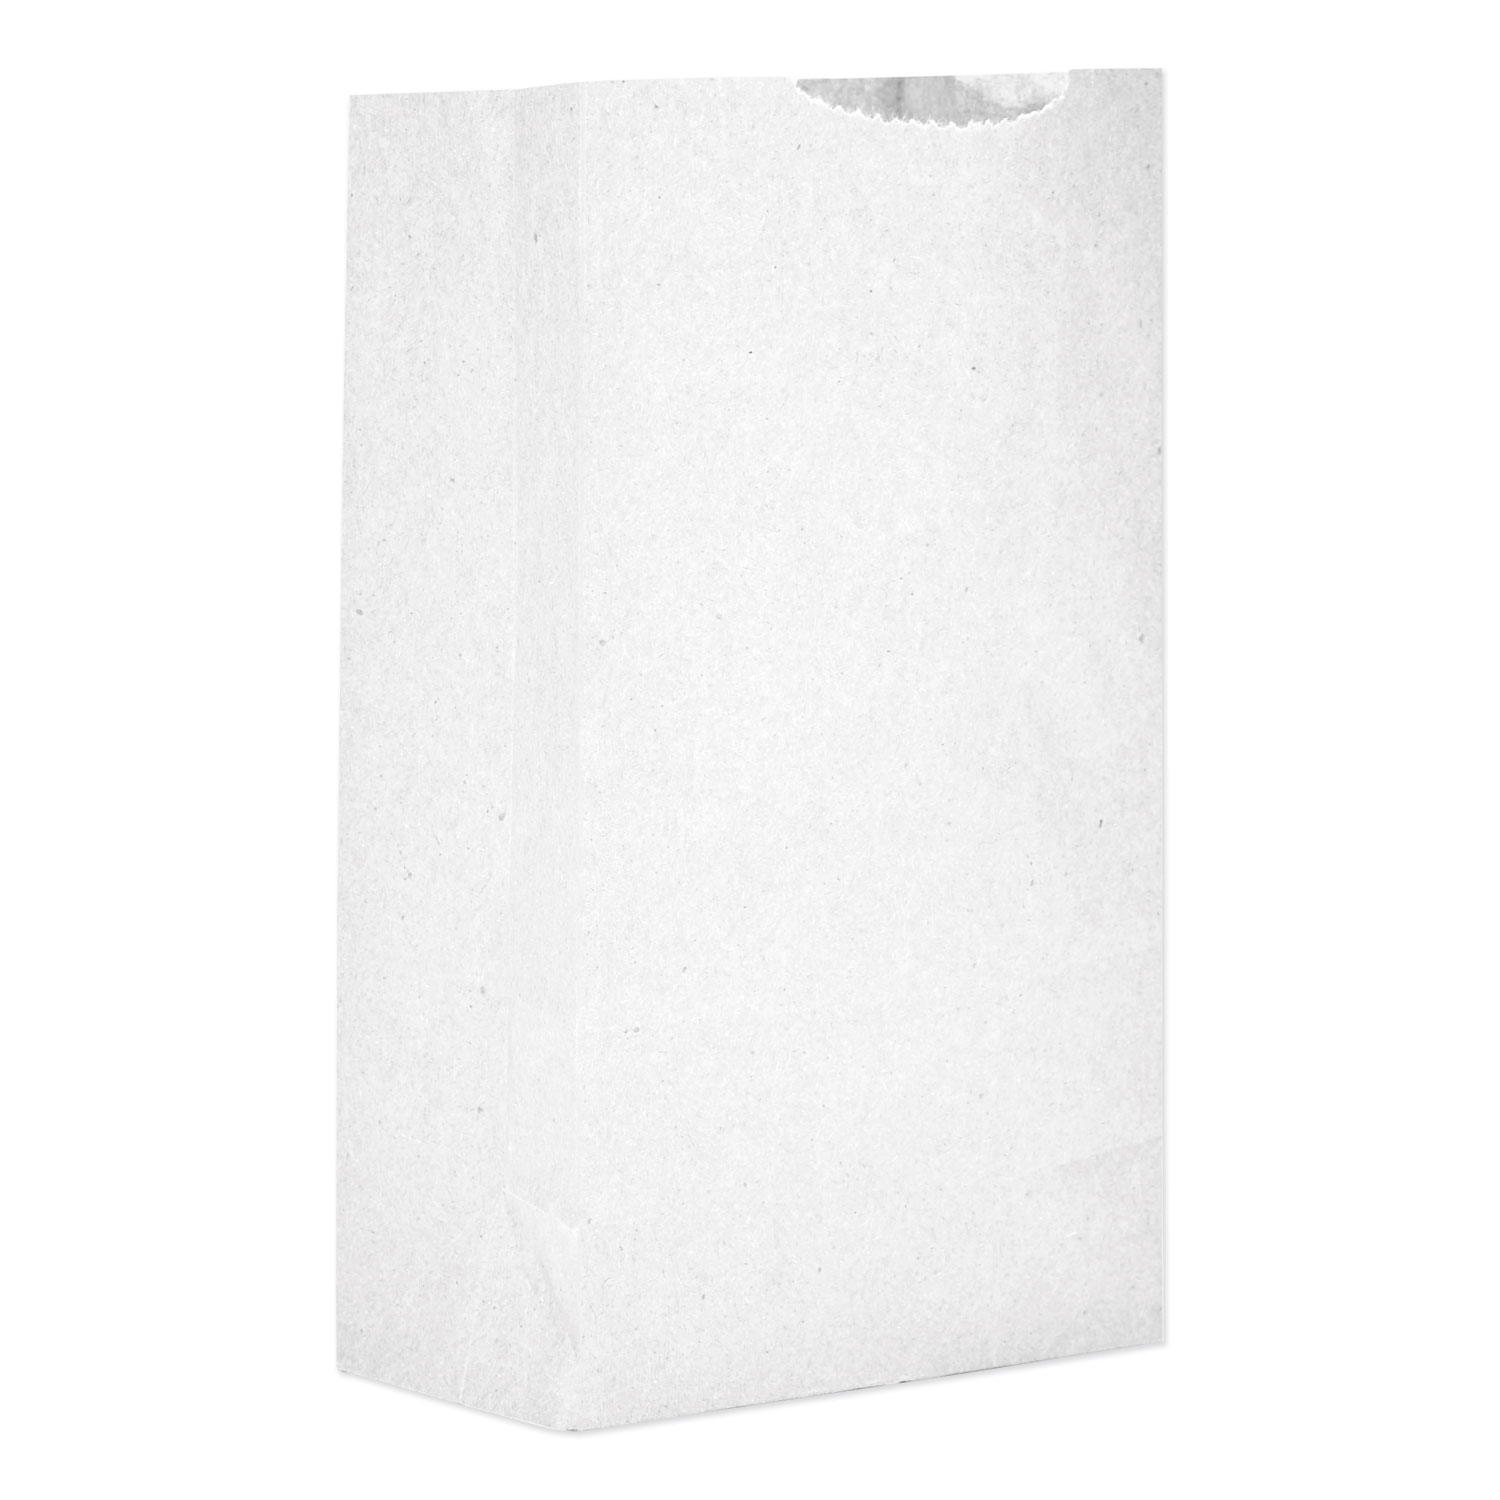 "Grocery Paper Bags, 30 lbs Capacity, #2, 4.31""w x 2.44""d x 7.88""h, White, 500 Bags BAGGW2500"